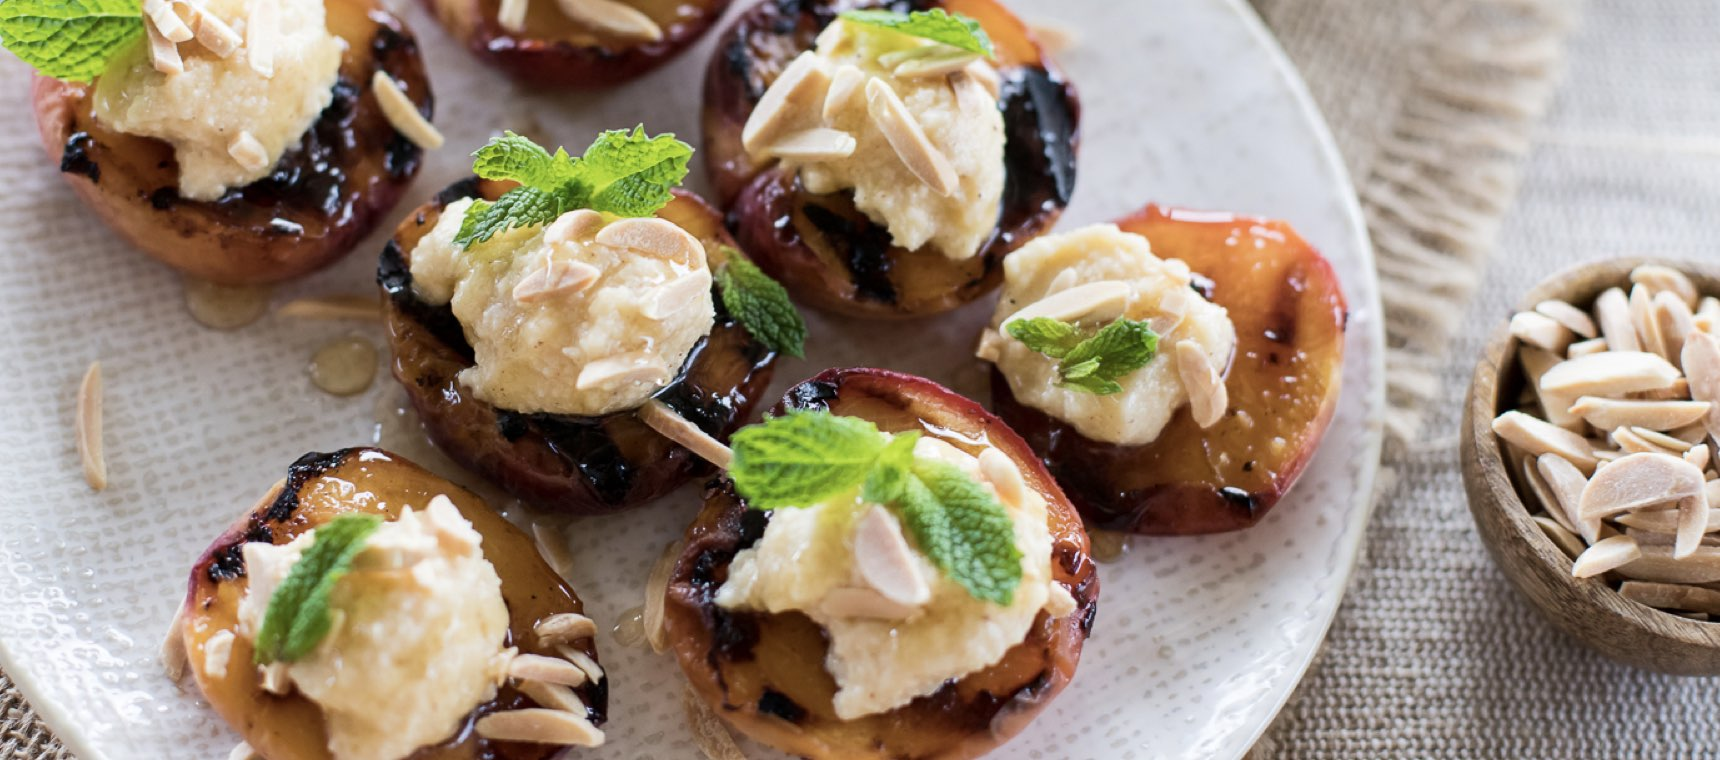 Grilled Cinnamon Peaches with Honey Mascarpone